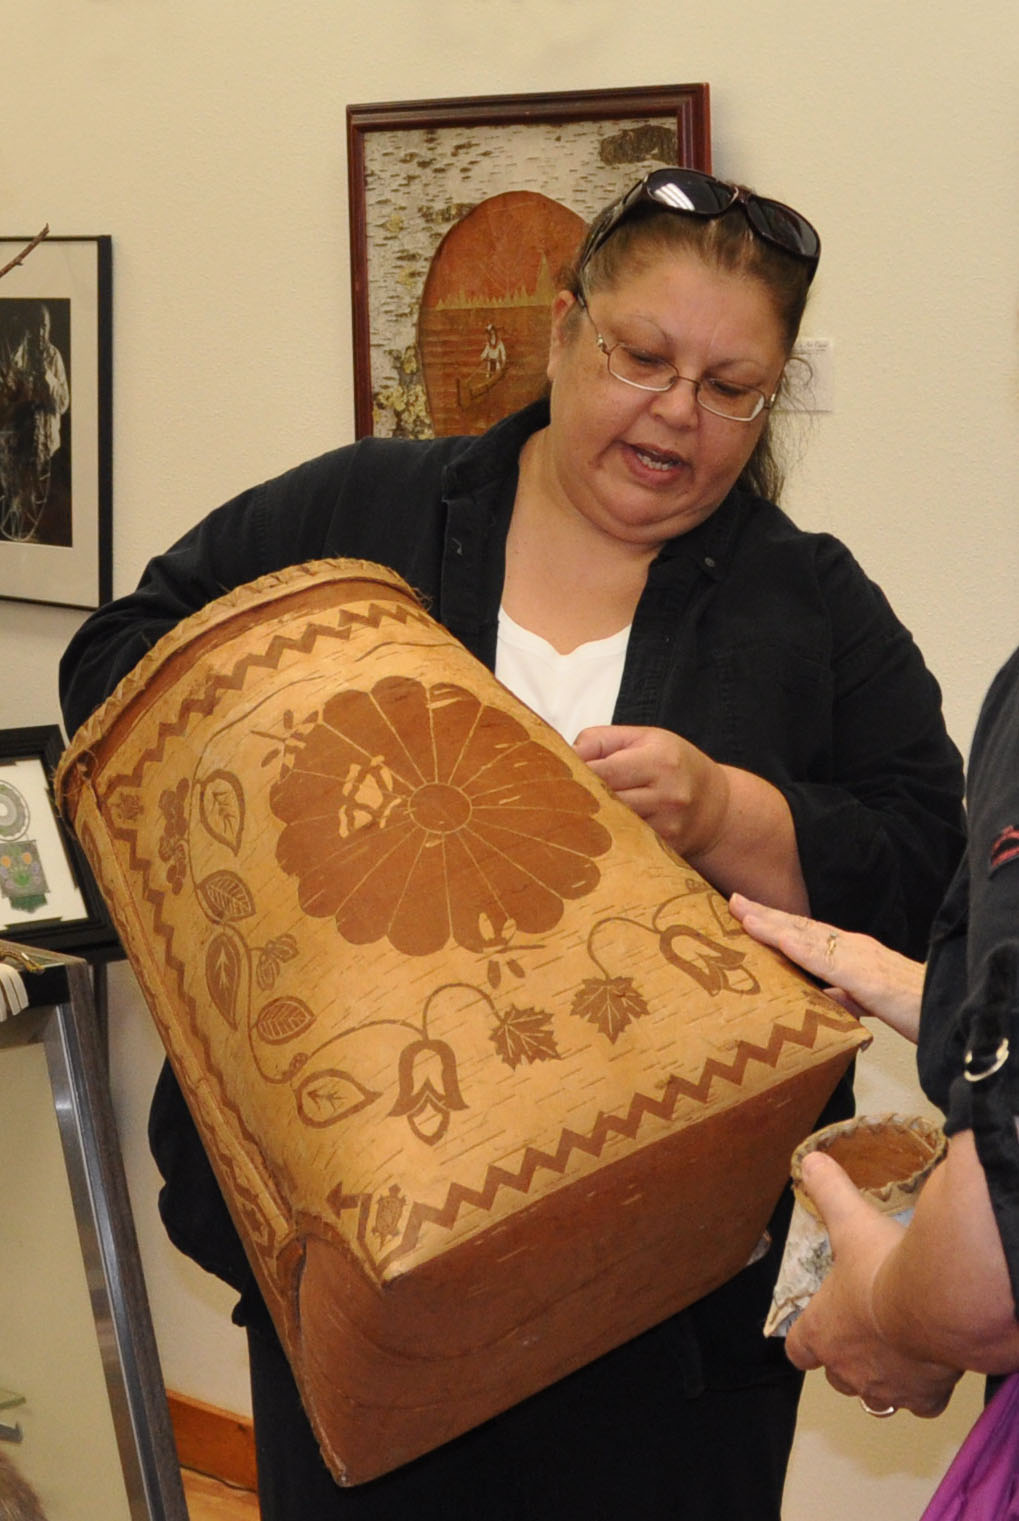 Sandra Peterson, member of the Lac du Flambeau band of Lake Superior Chippewa, makes birch bark baskets.